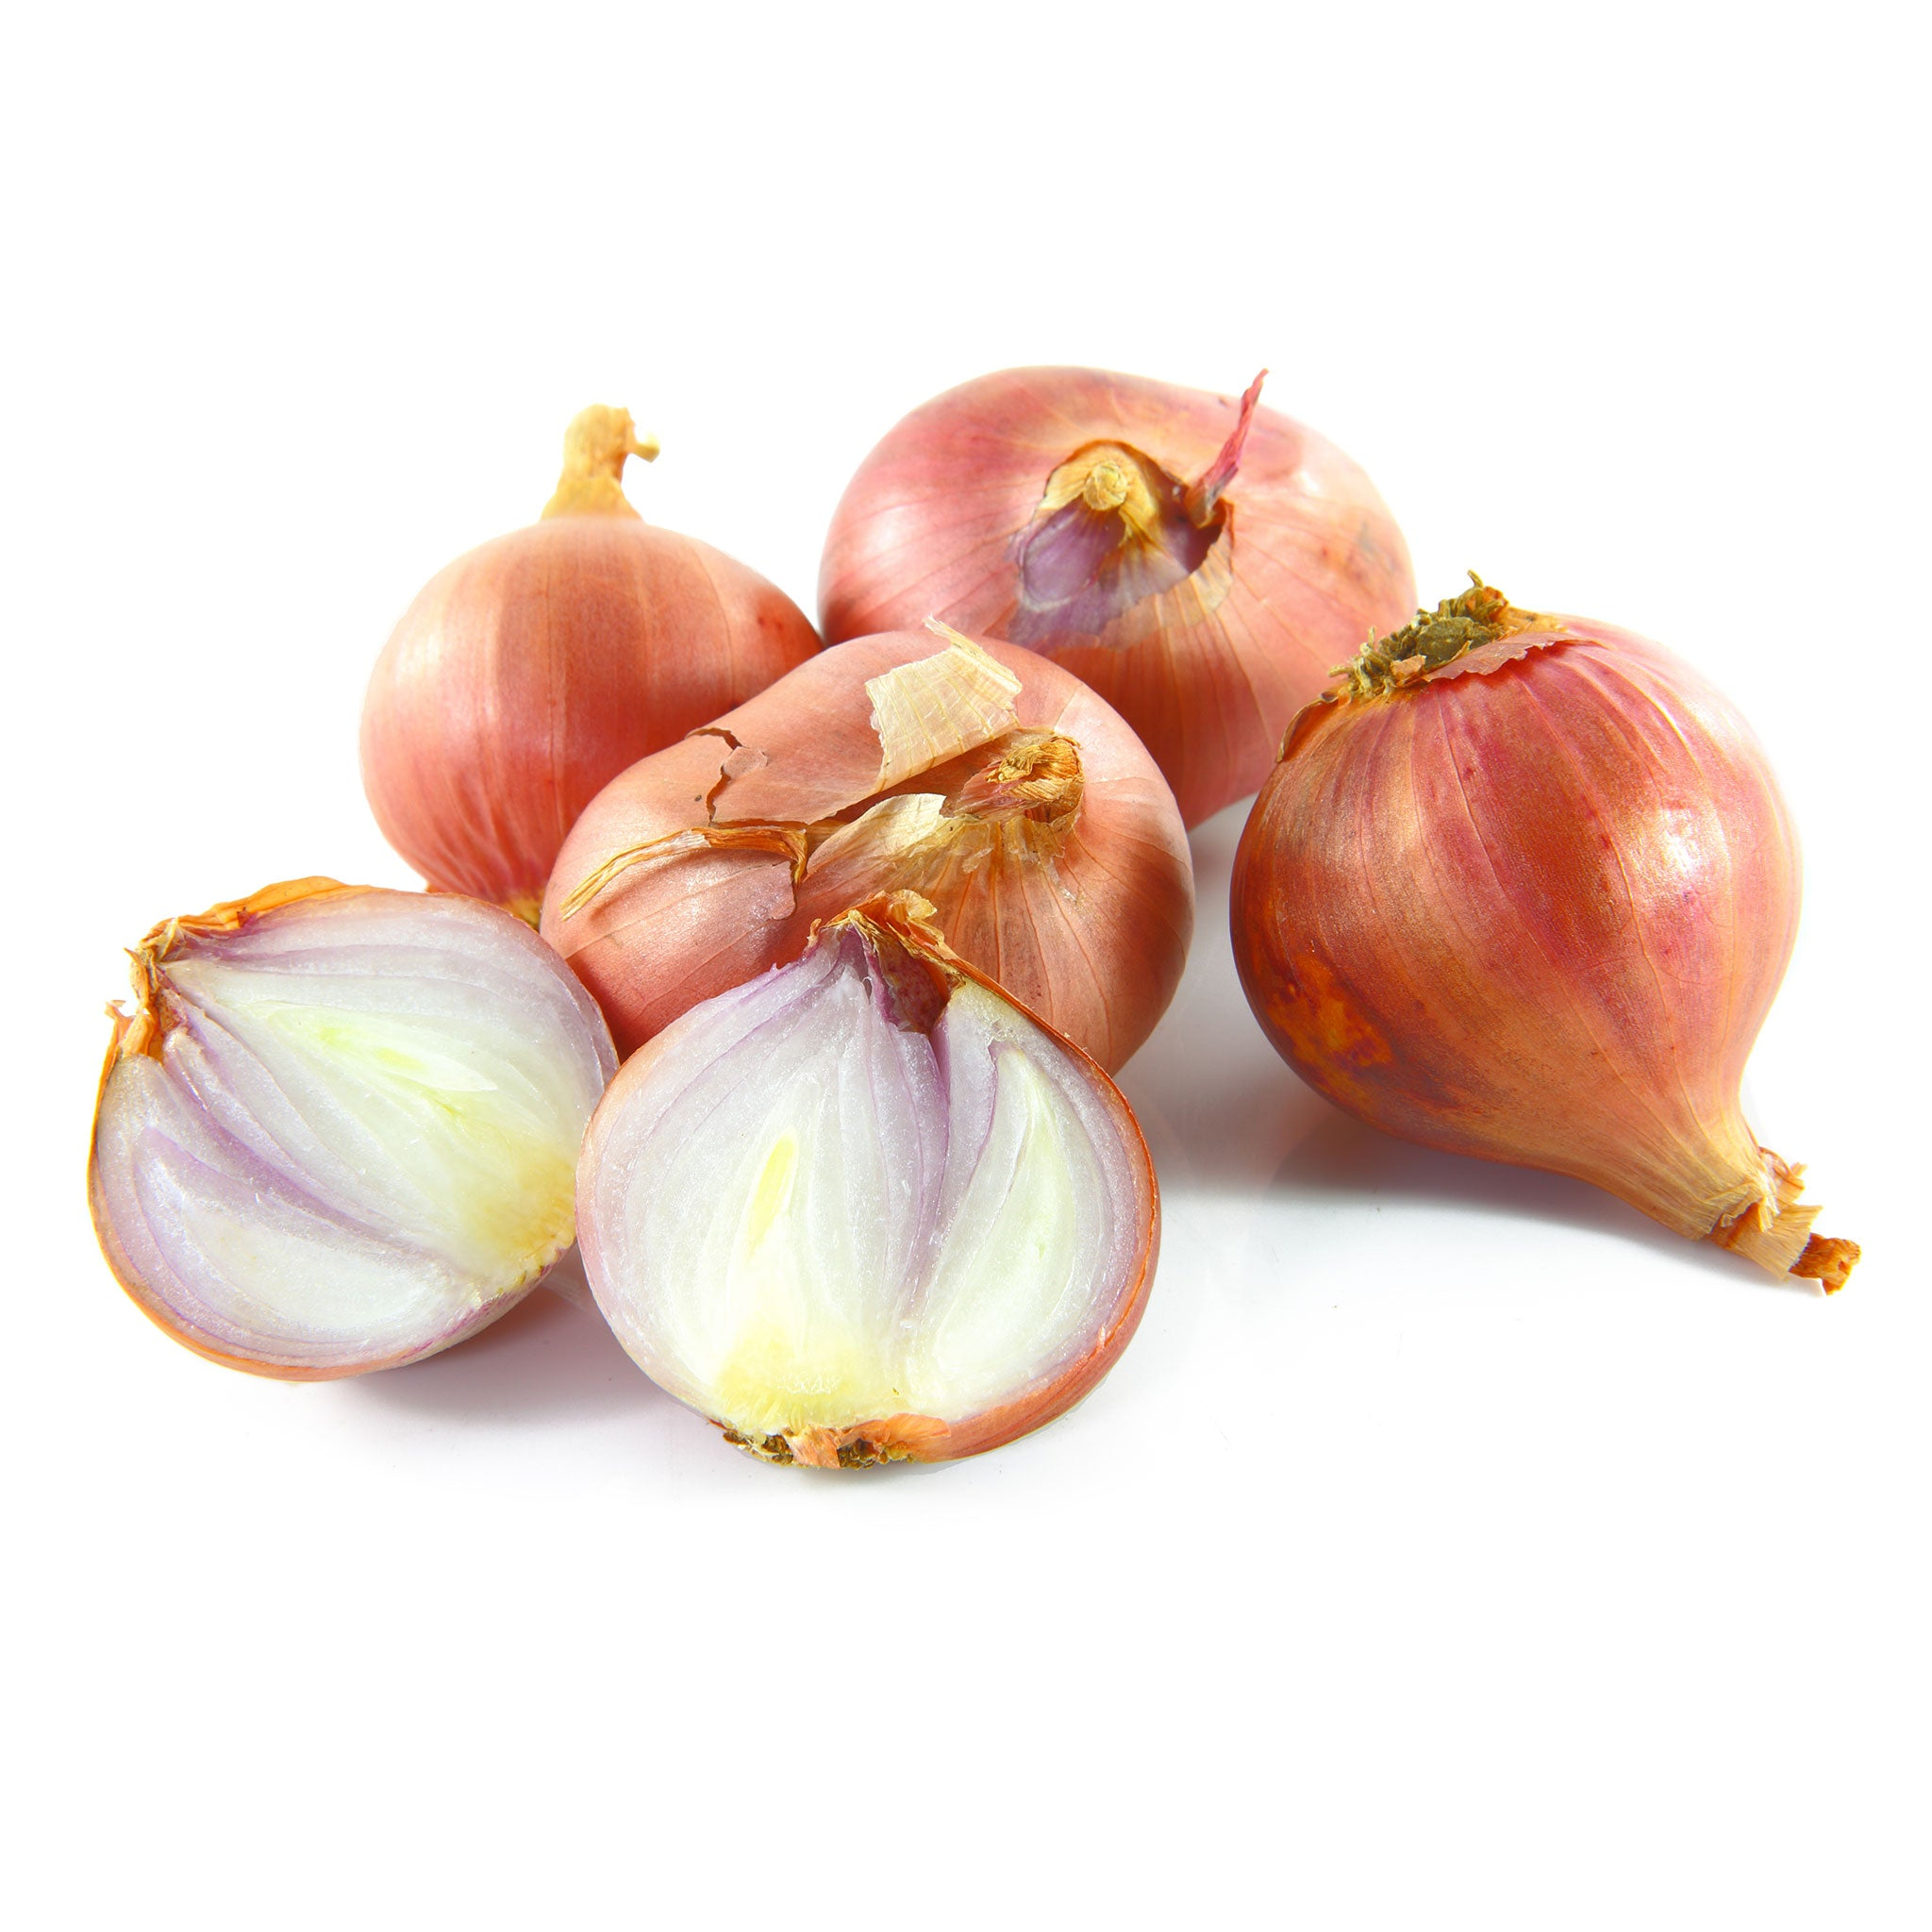 Thai red onion (shallots) 200g - imported weekly from Thailand